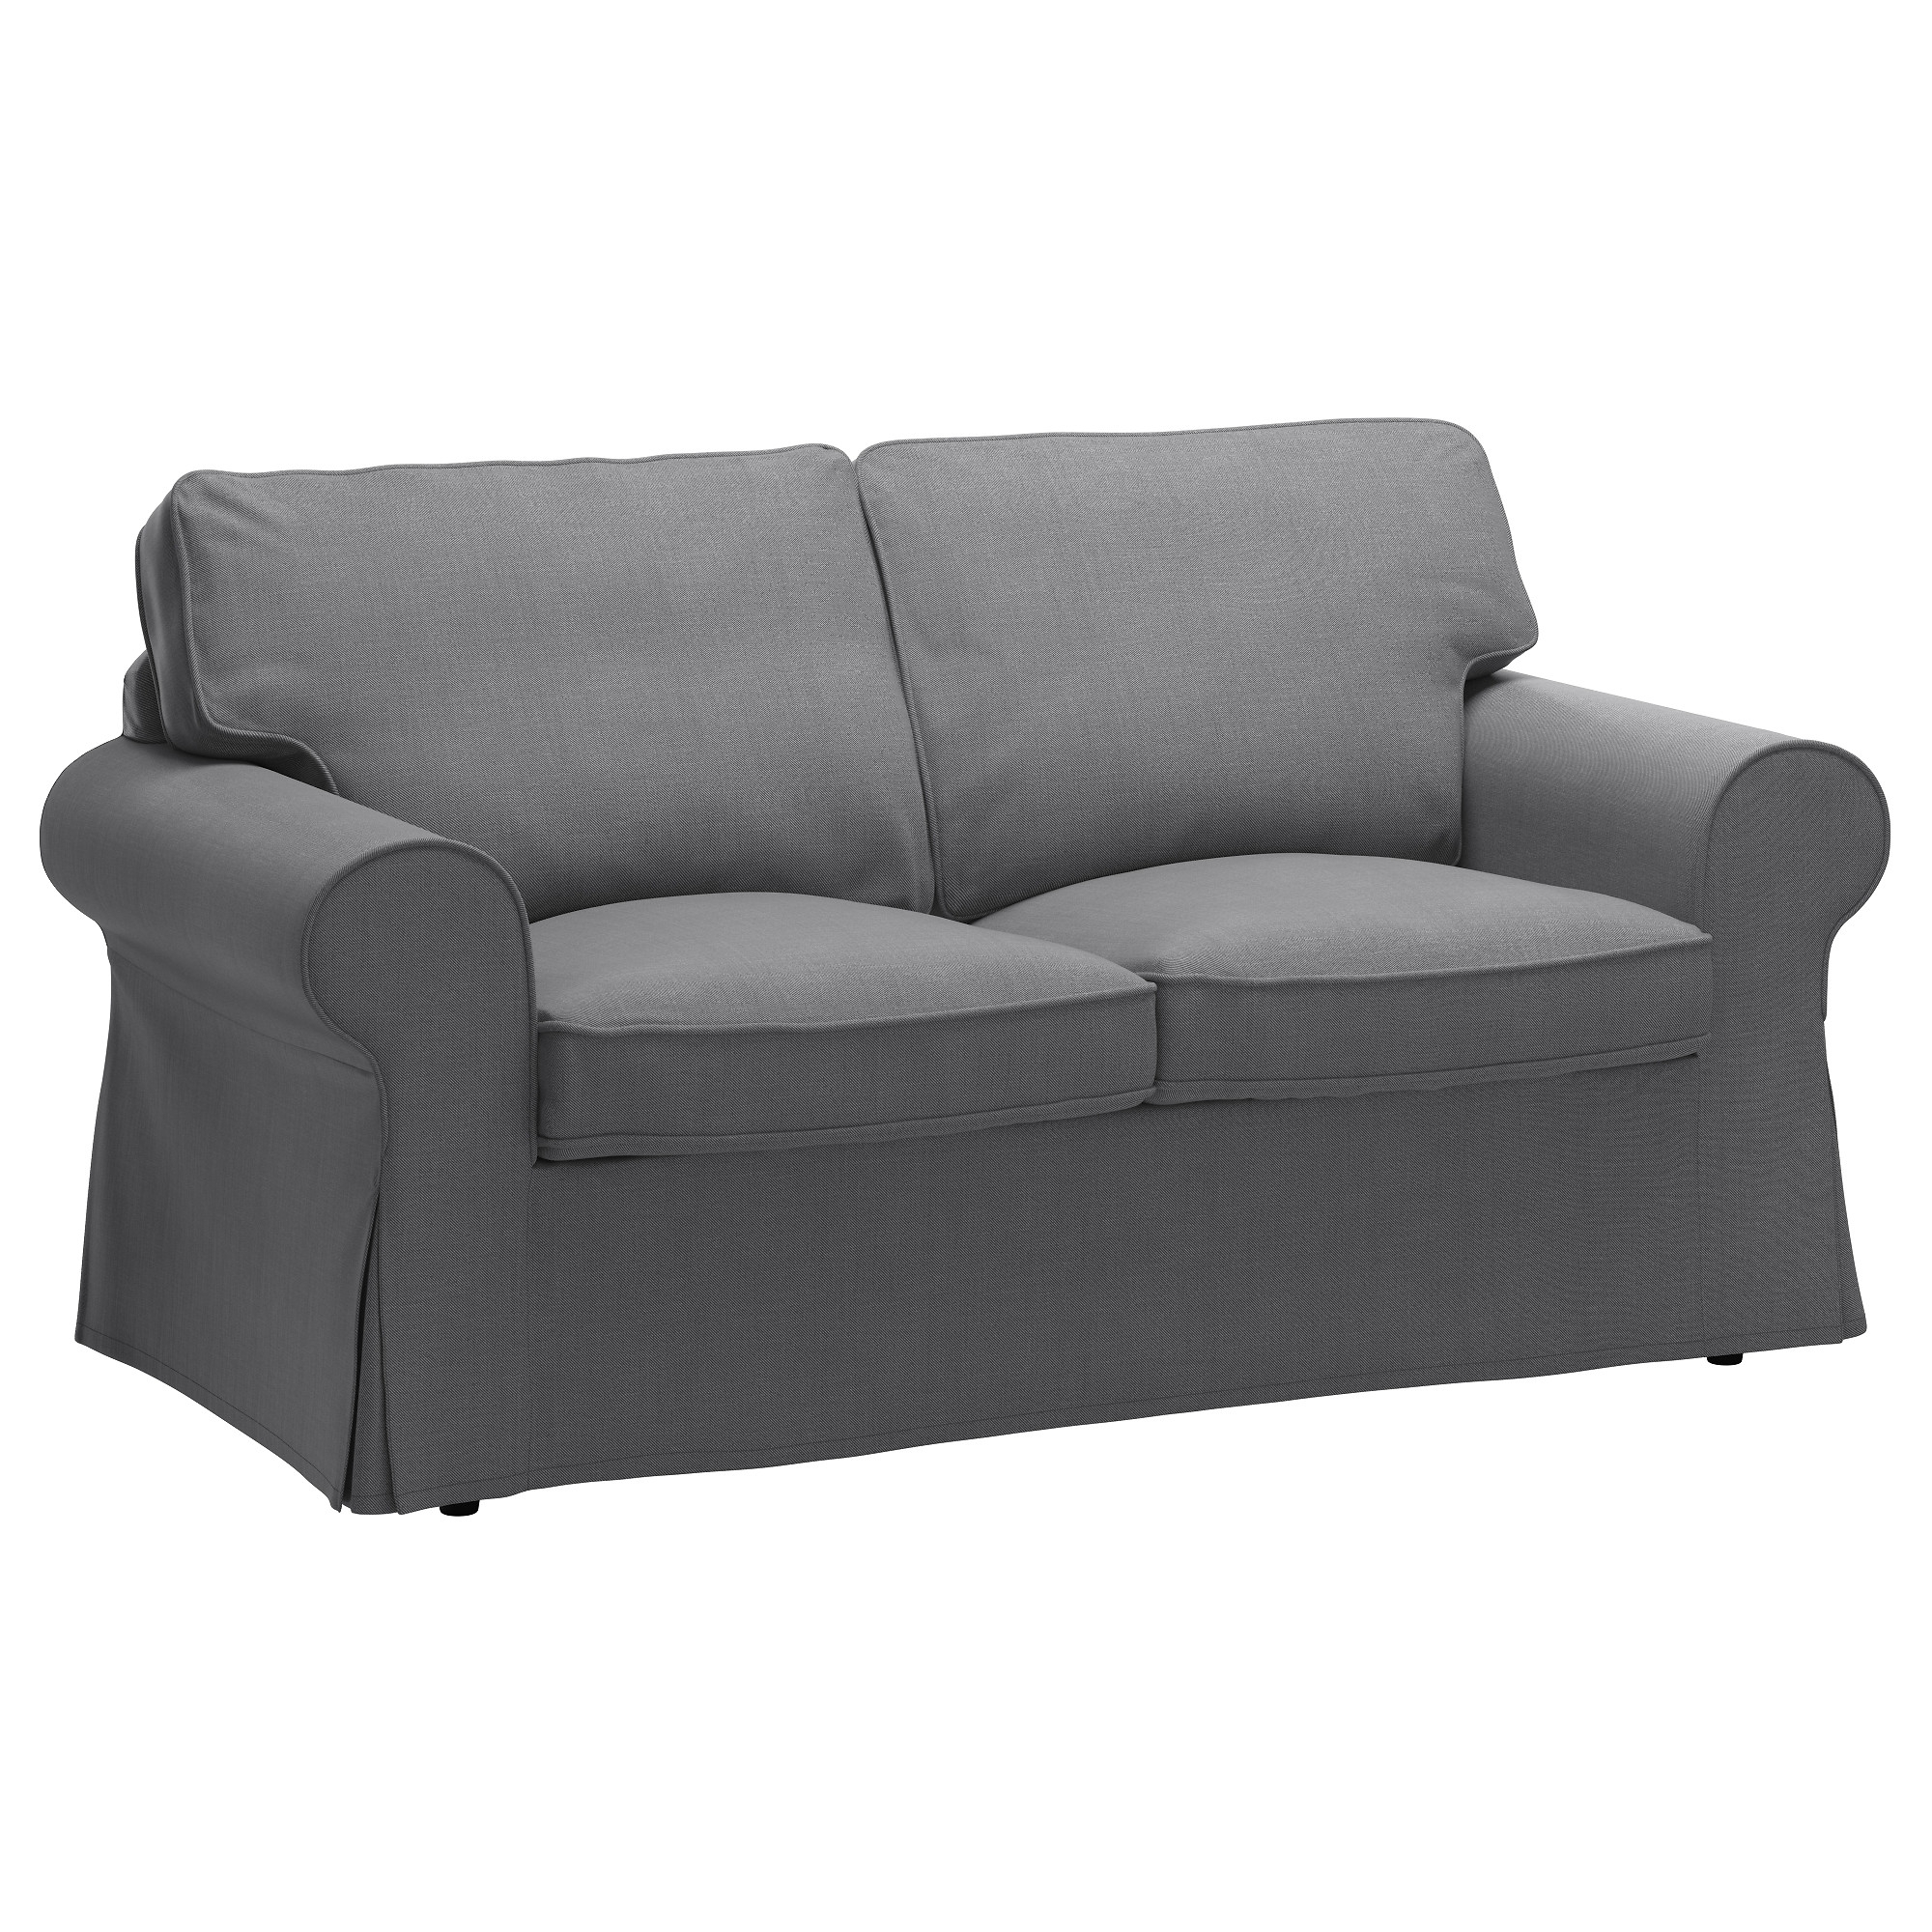 Favorite Ektorp Two Seat Sofa – Lofallet Beige – Ikea Within 2 Seater Sofas (View 3 of 20)